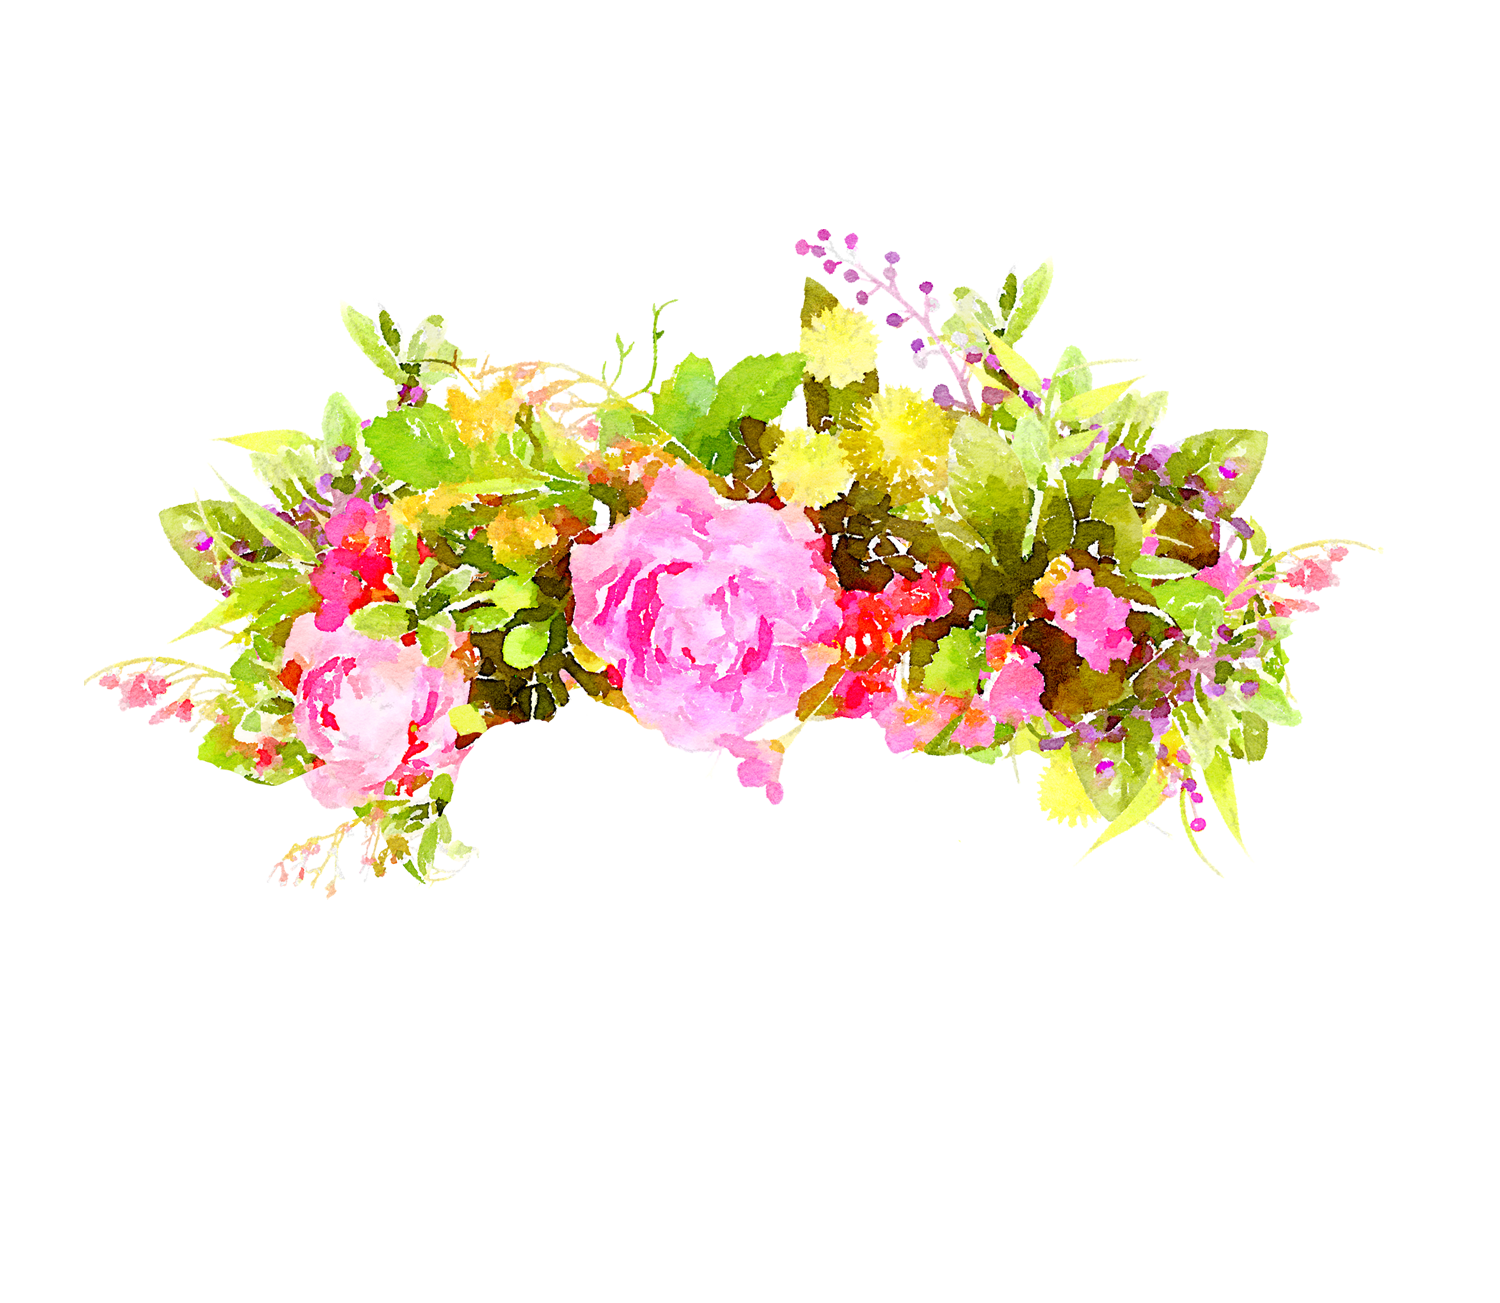 HD Flowers Image Watercolor PNG